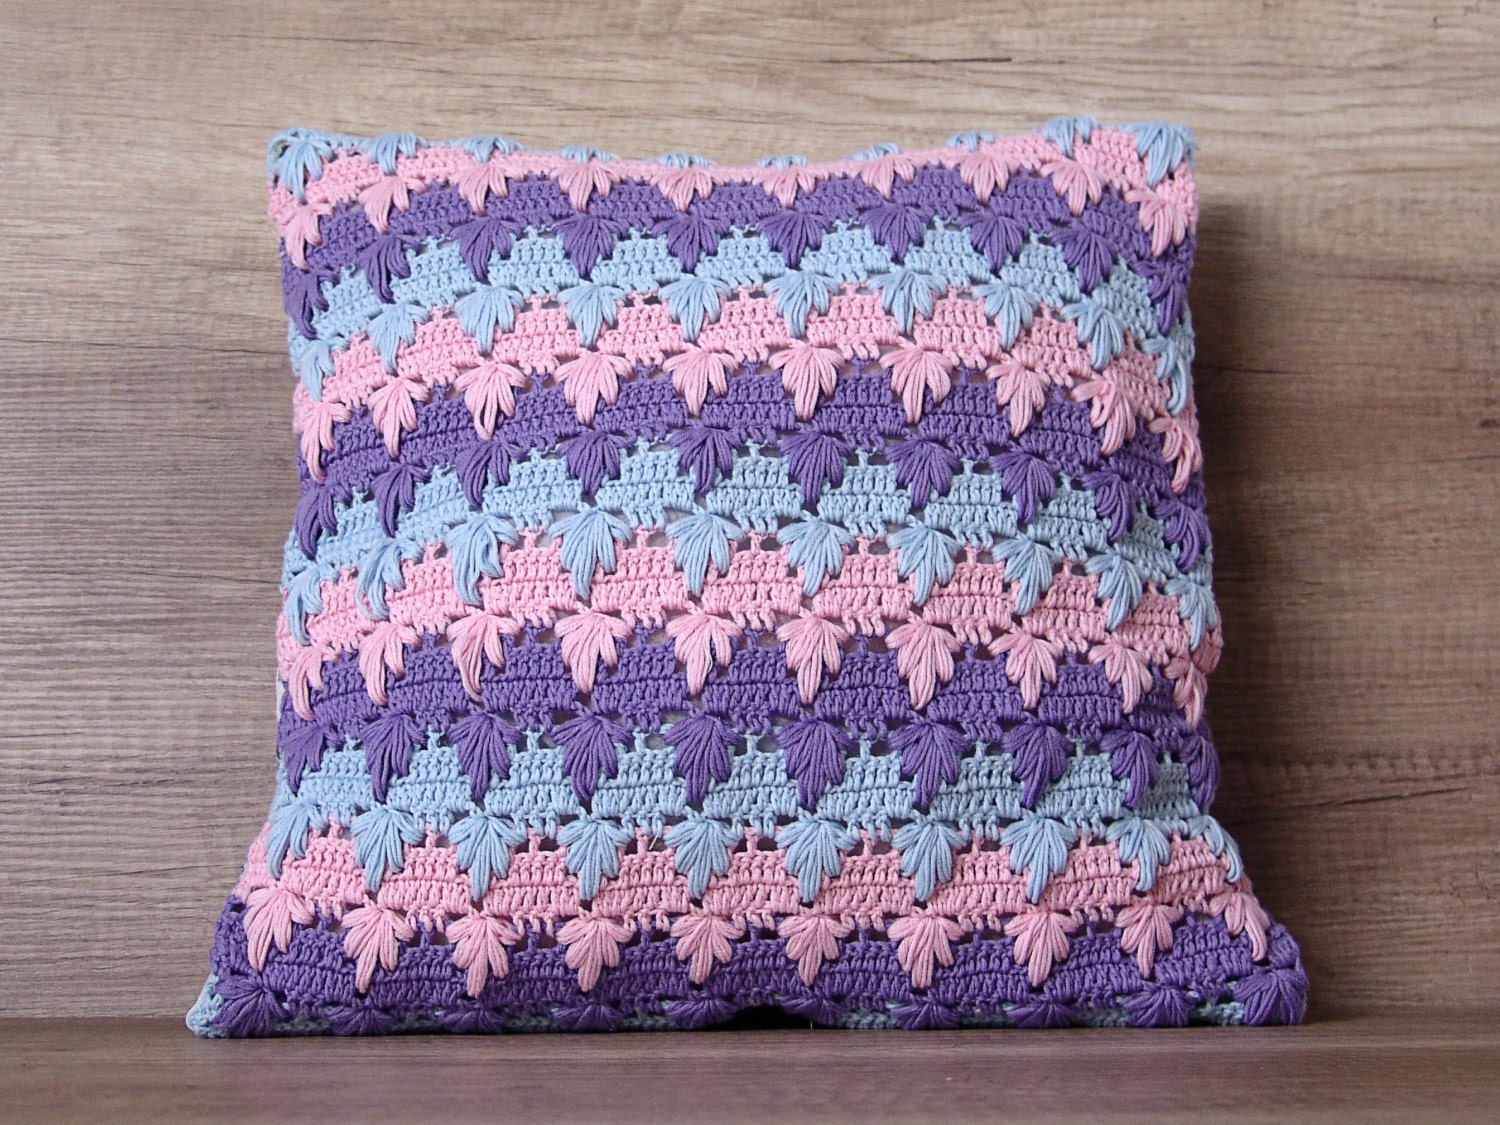 Cute Handmade Pillow Covers : Cute crochet cushion cover cool colorful pastel blue lilac